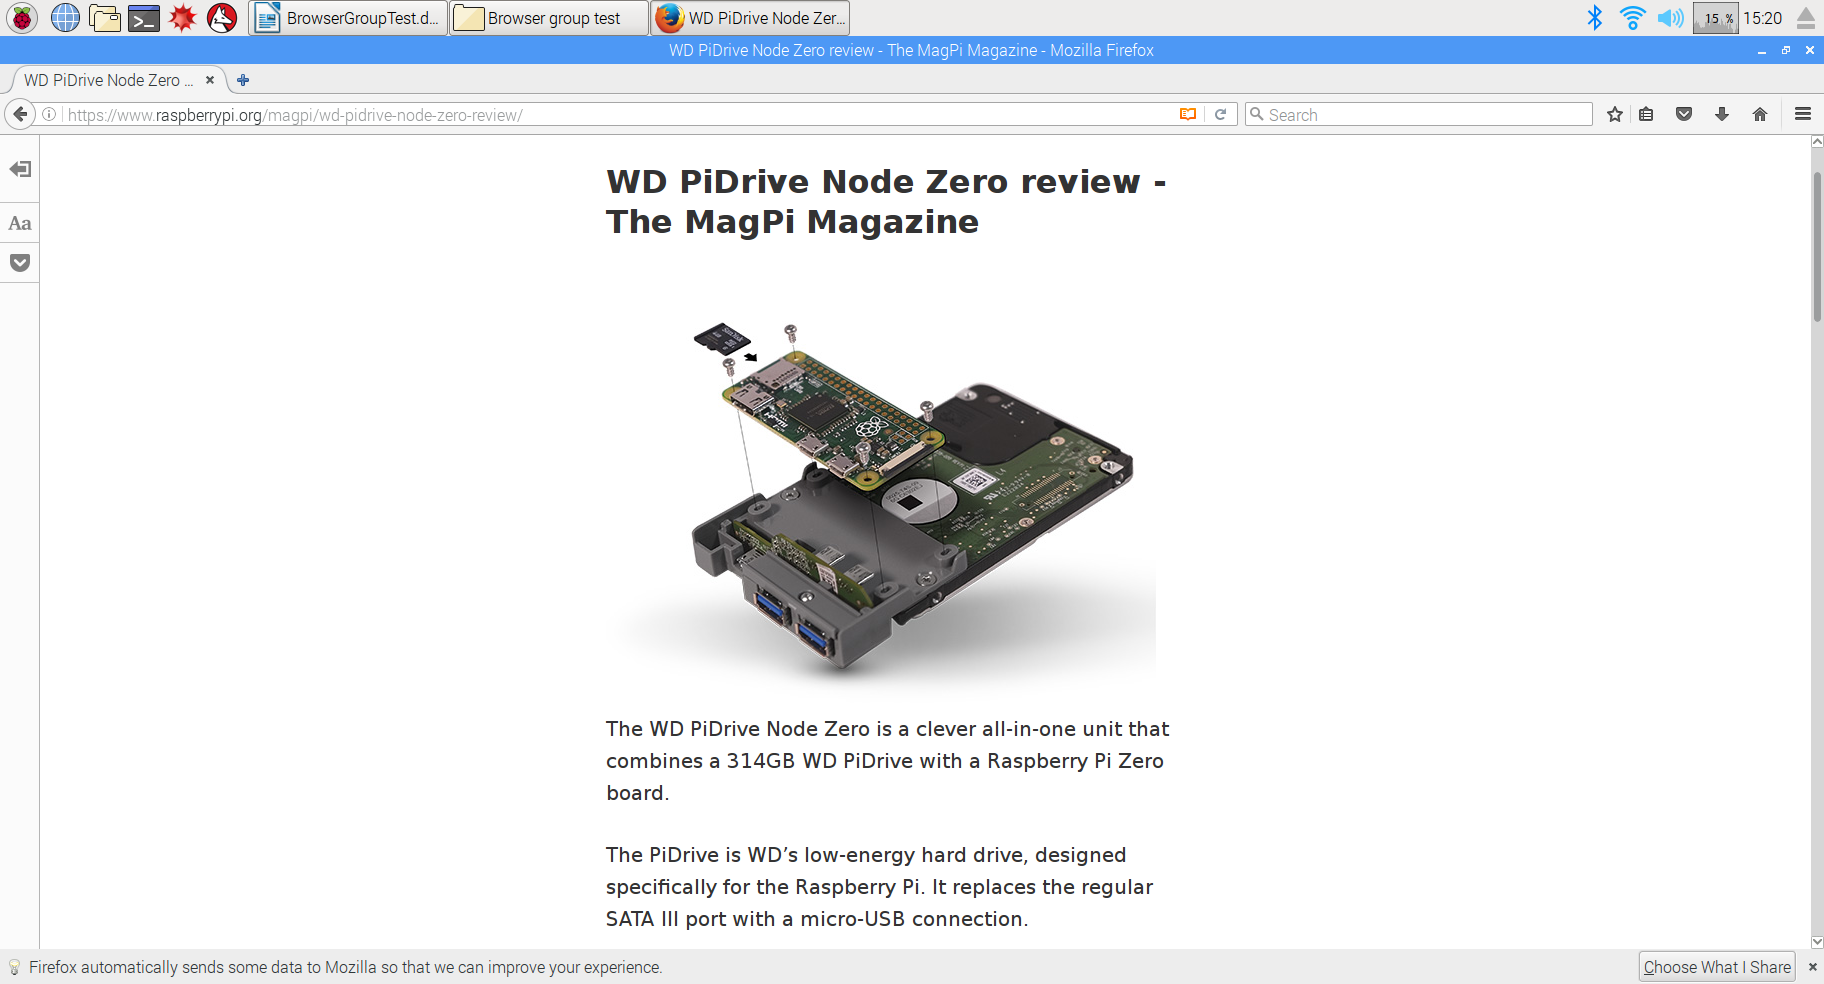 Raspberry Pi web browser group test - The MagPi MagazineThe